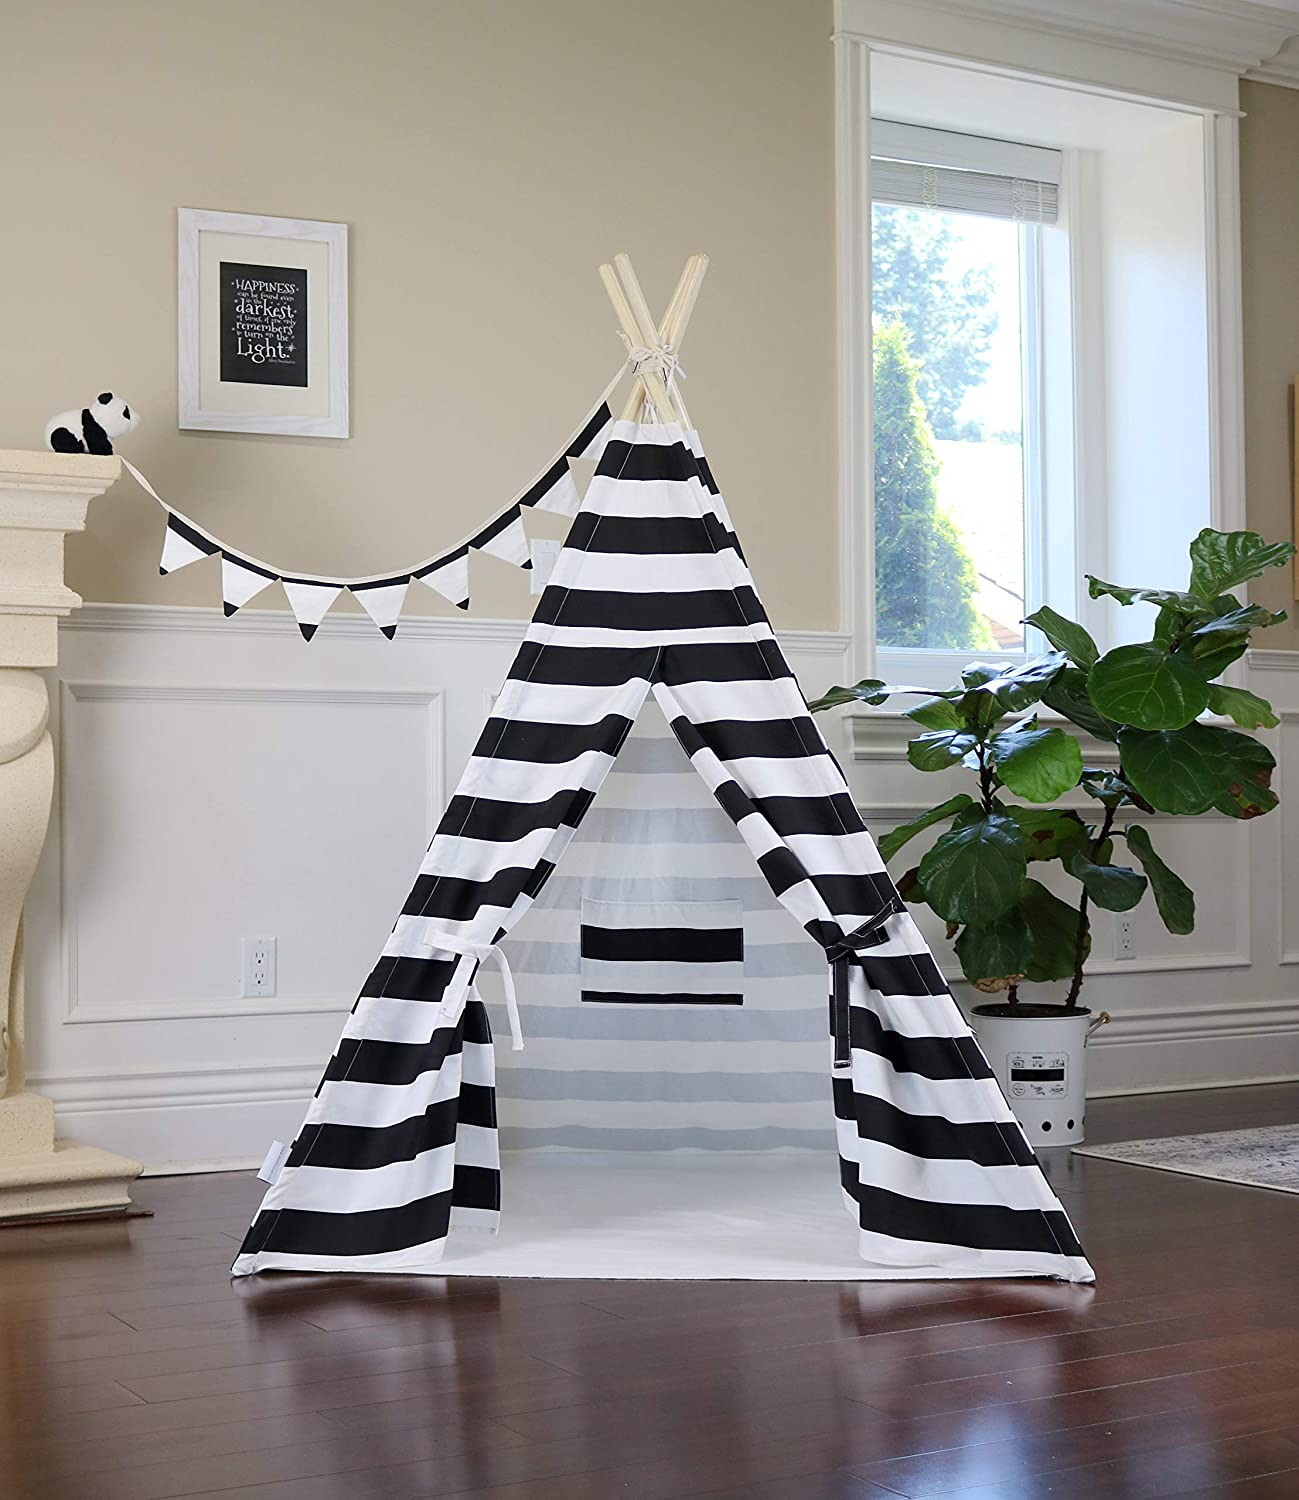 Play Tent Play House Grey Chevron Teepee from Canada with Floor Flags Banner and Storage Bag Pocket Poles LED Light Kids Room Decor